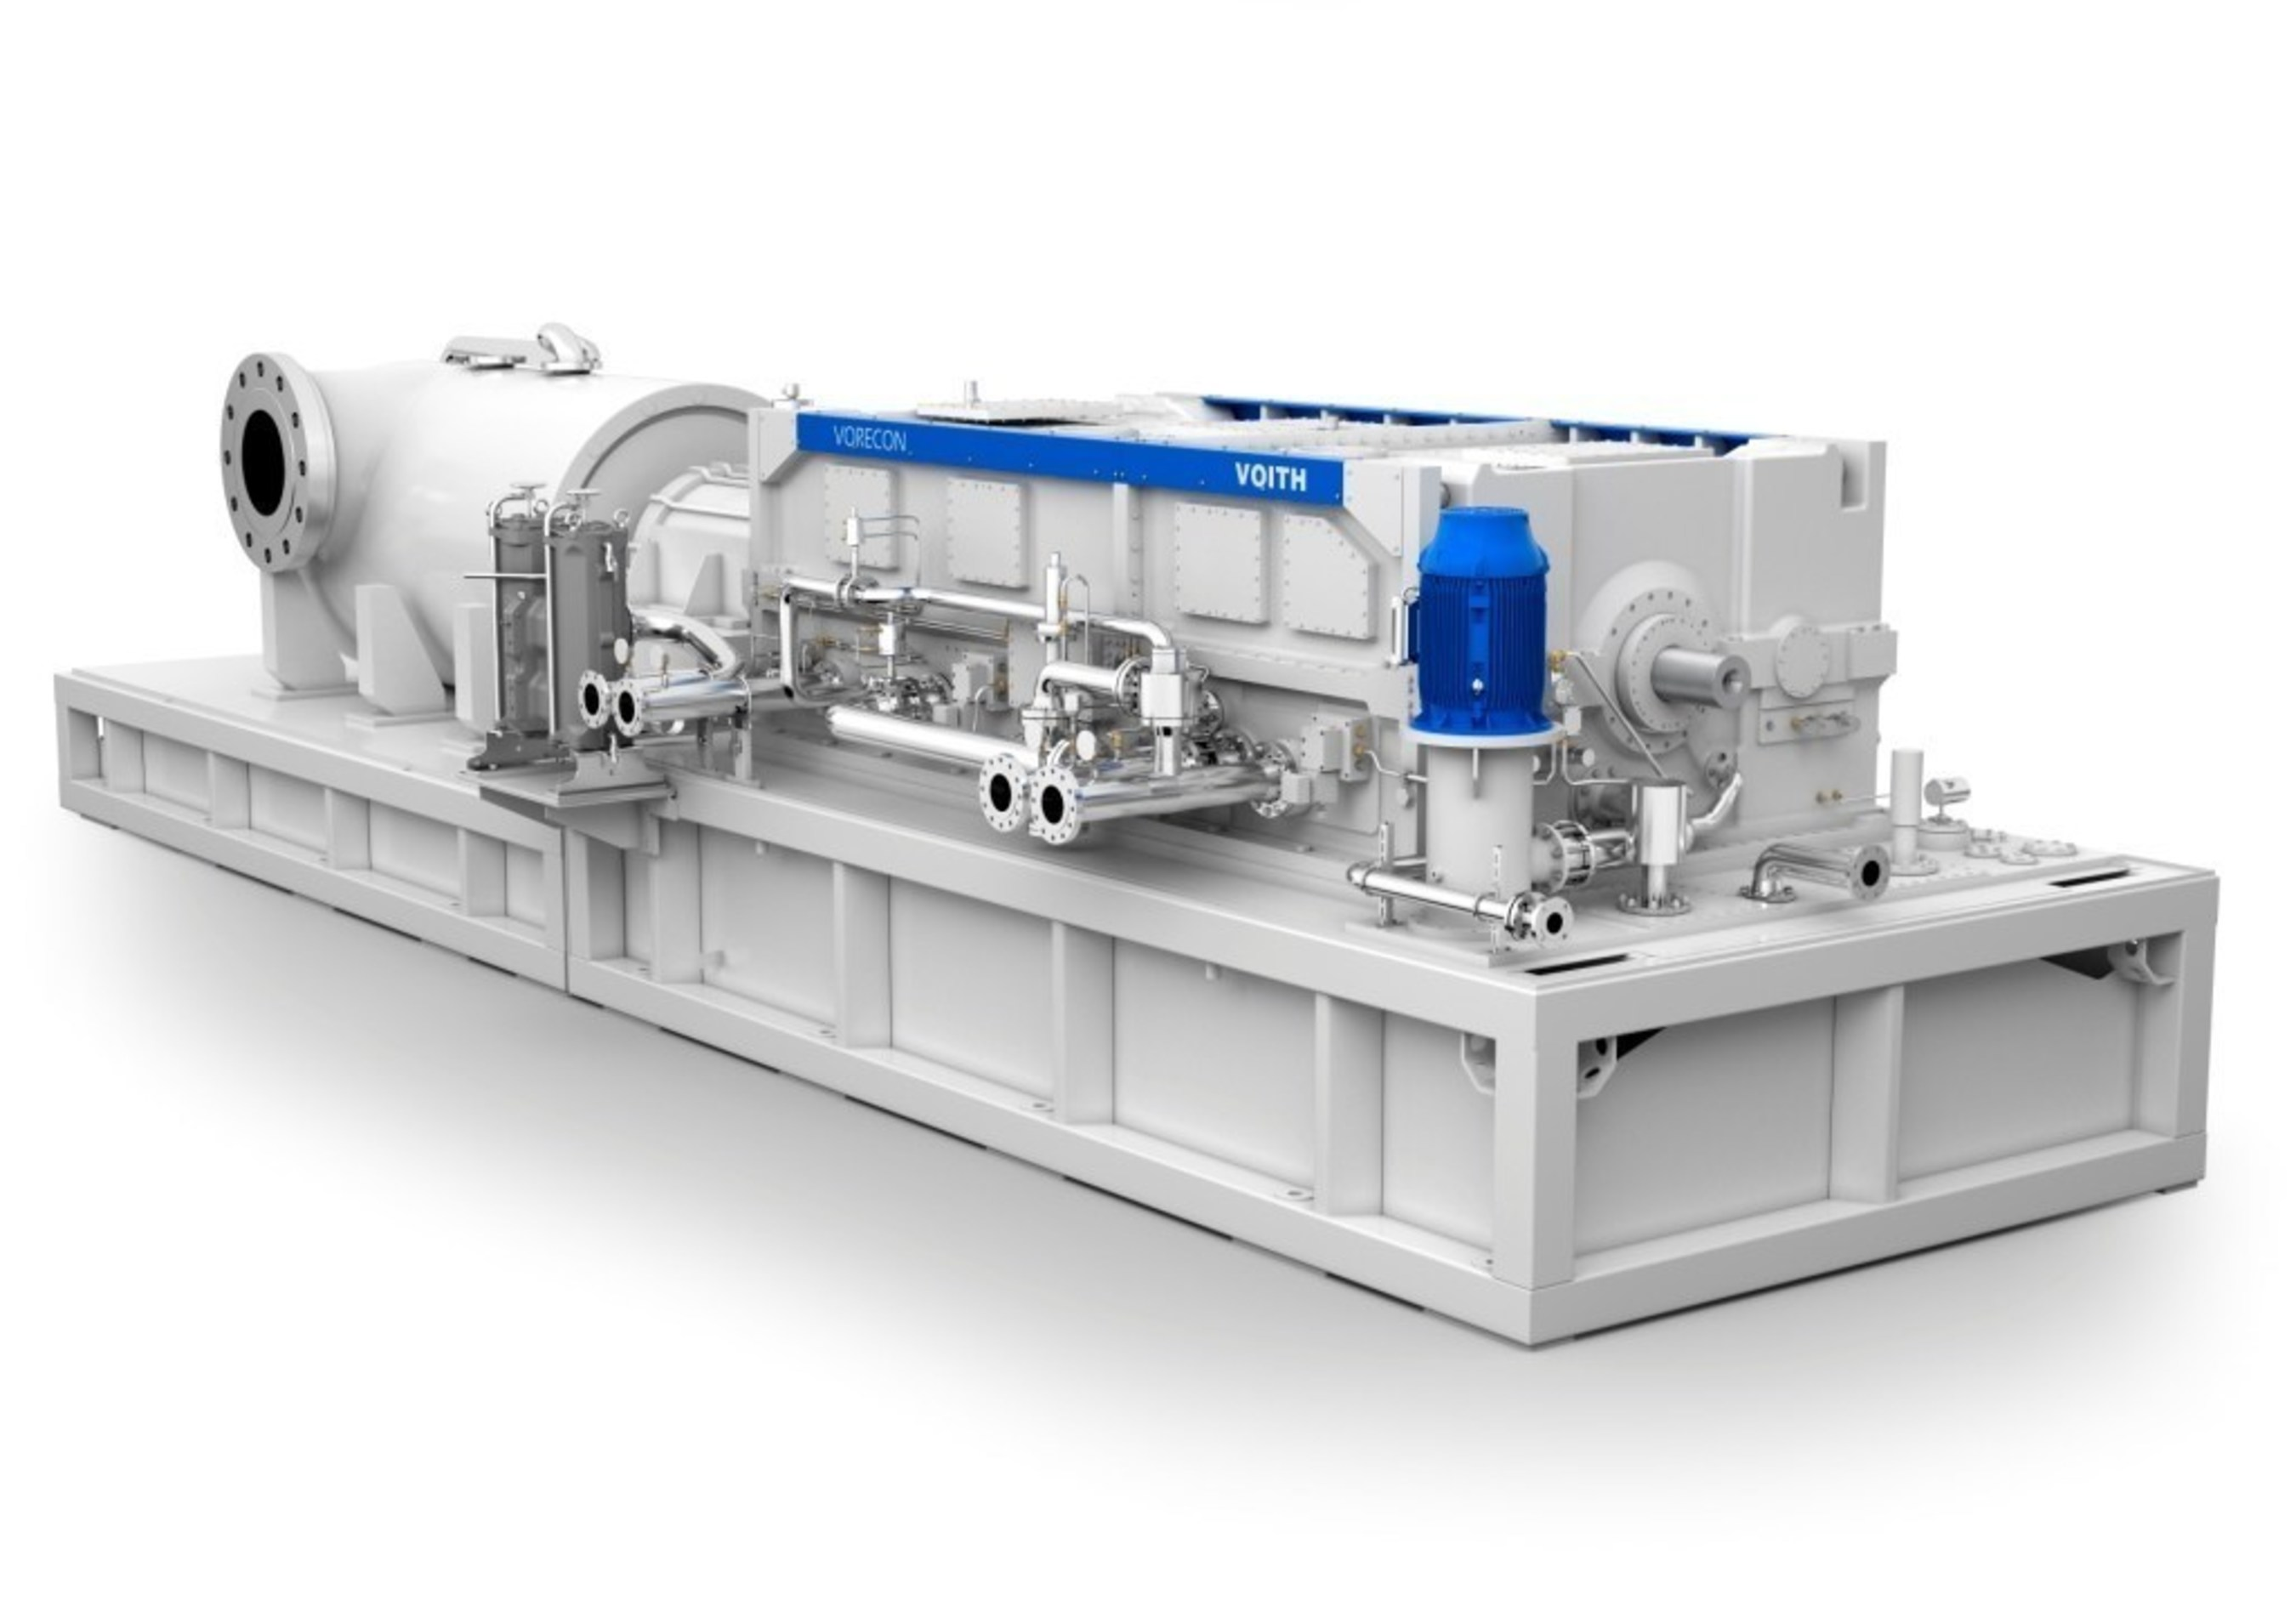 The Voith Variable Speed Planetary Gear Vorecon with Dual Torque Converter.